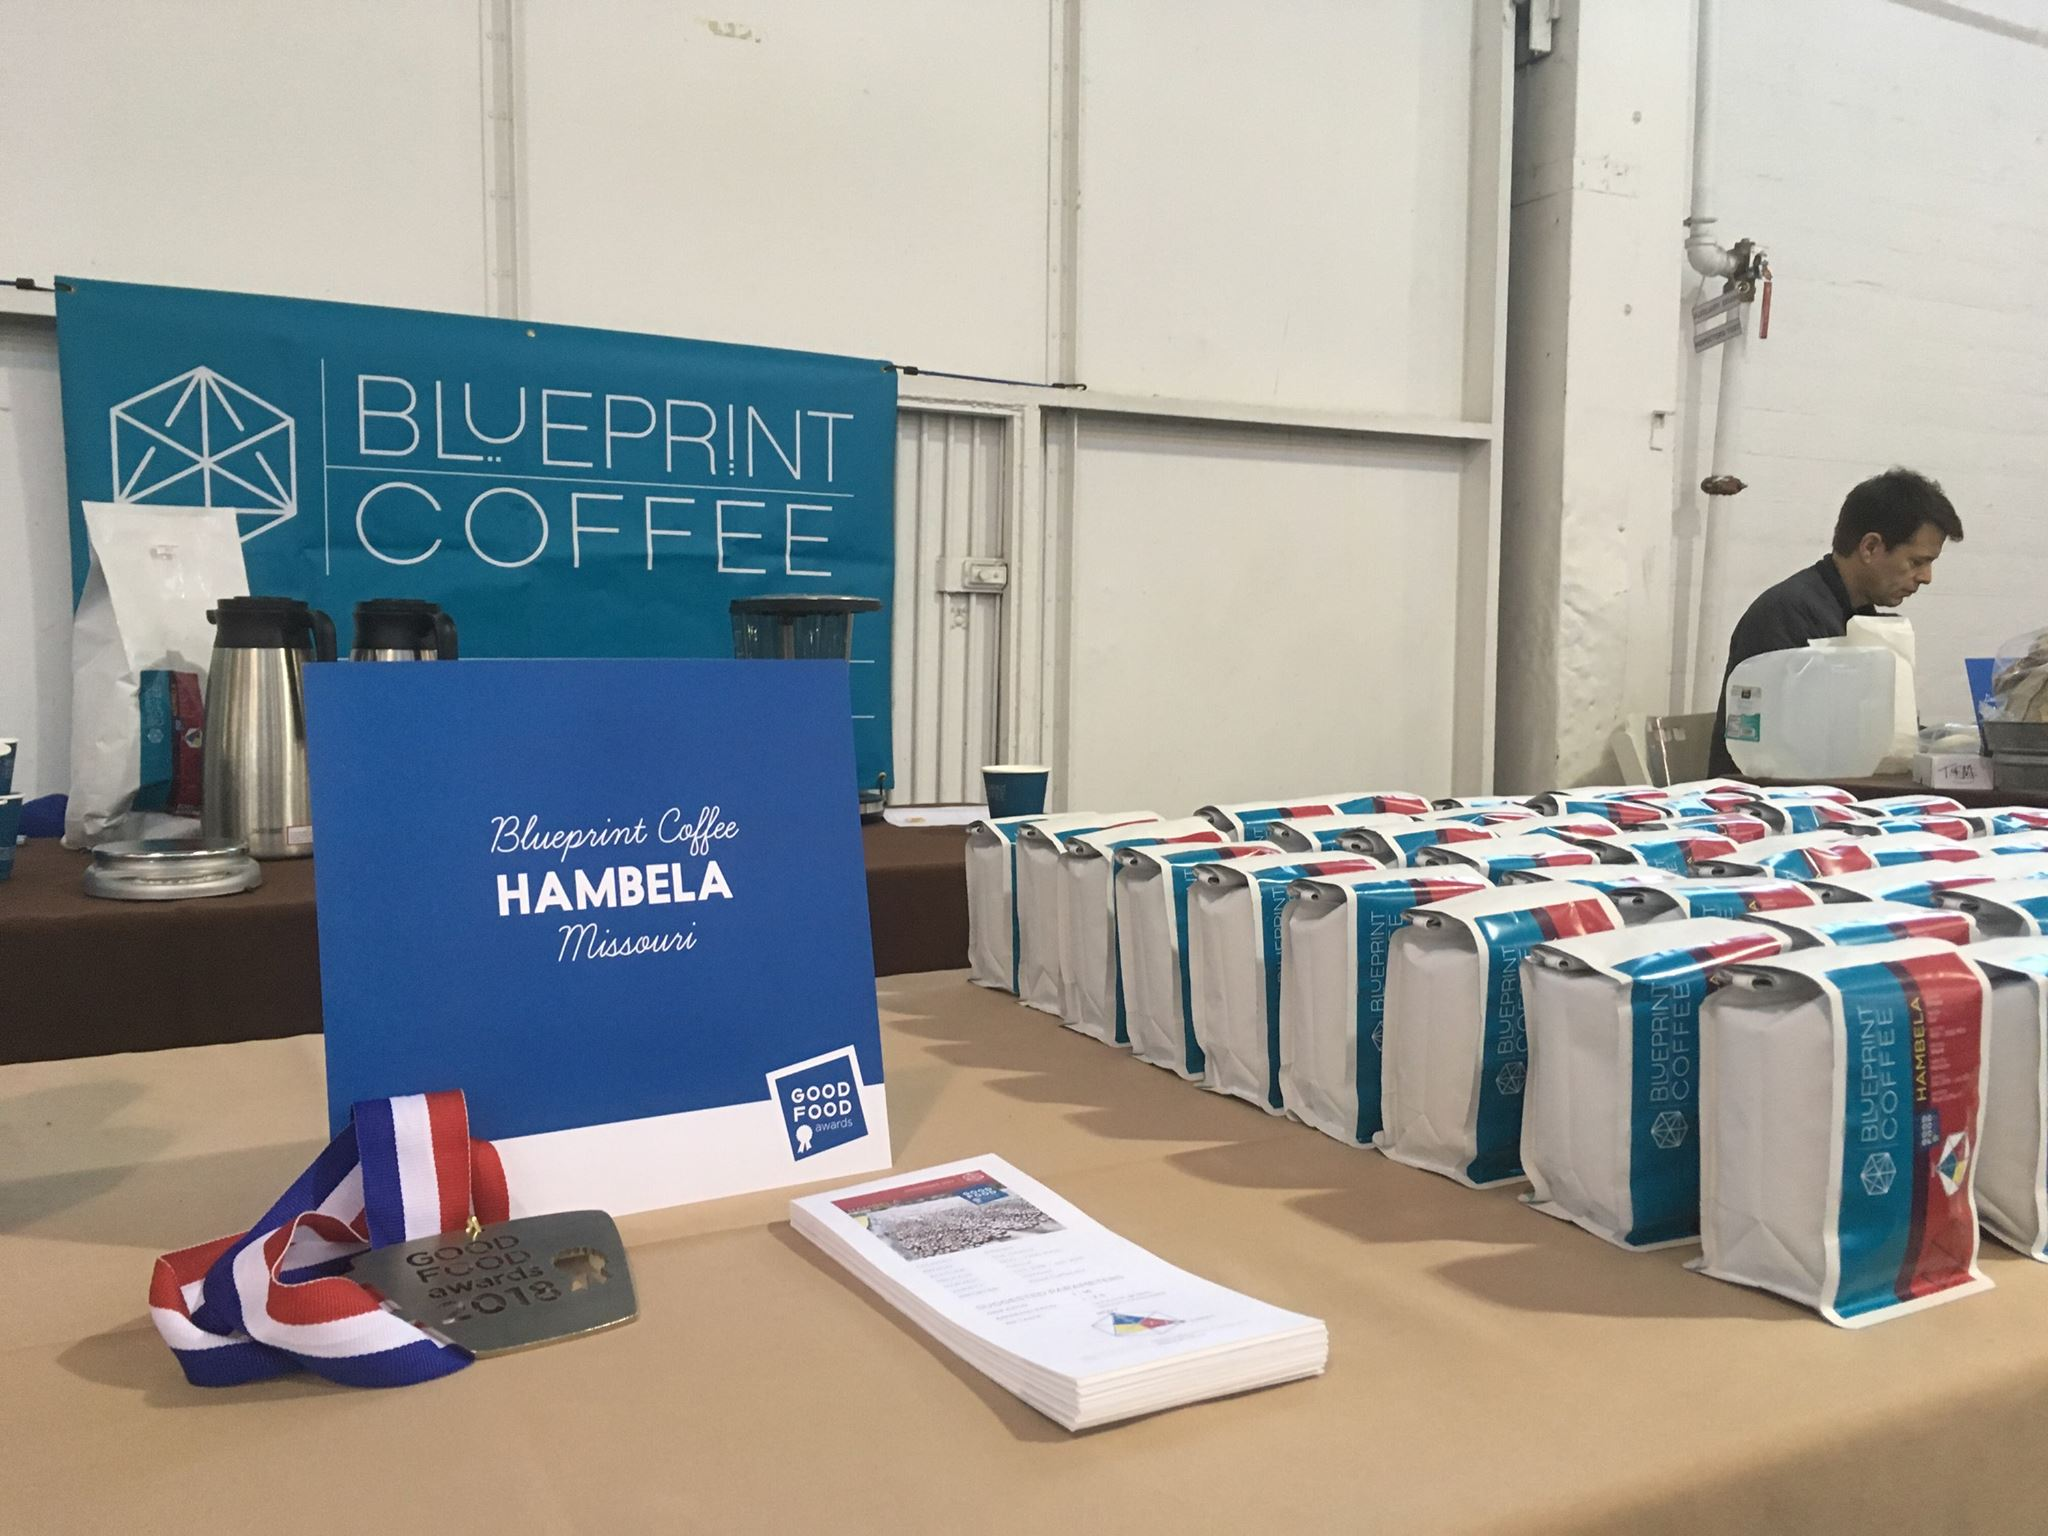 bluepint coffee in st. louis missouri wins good food award